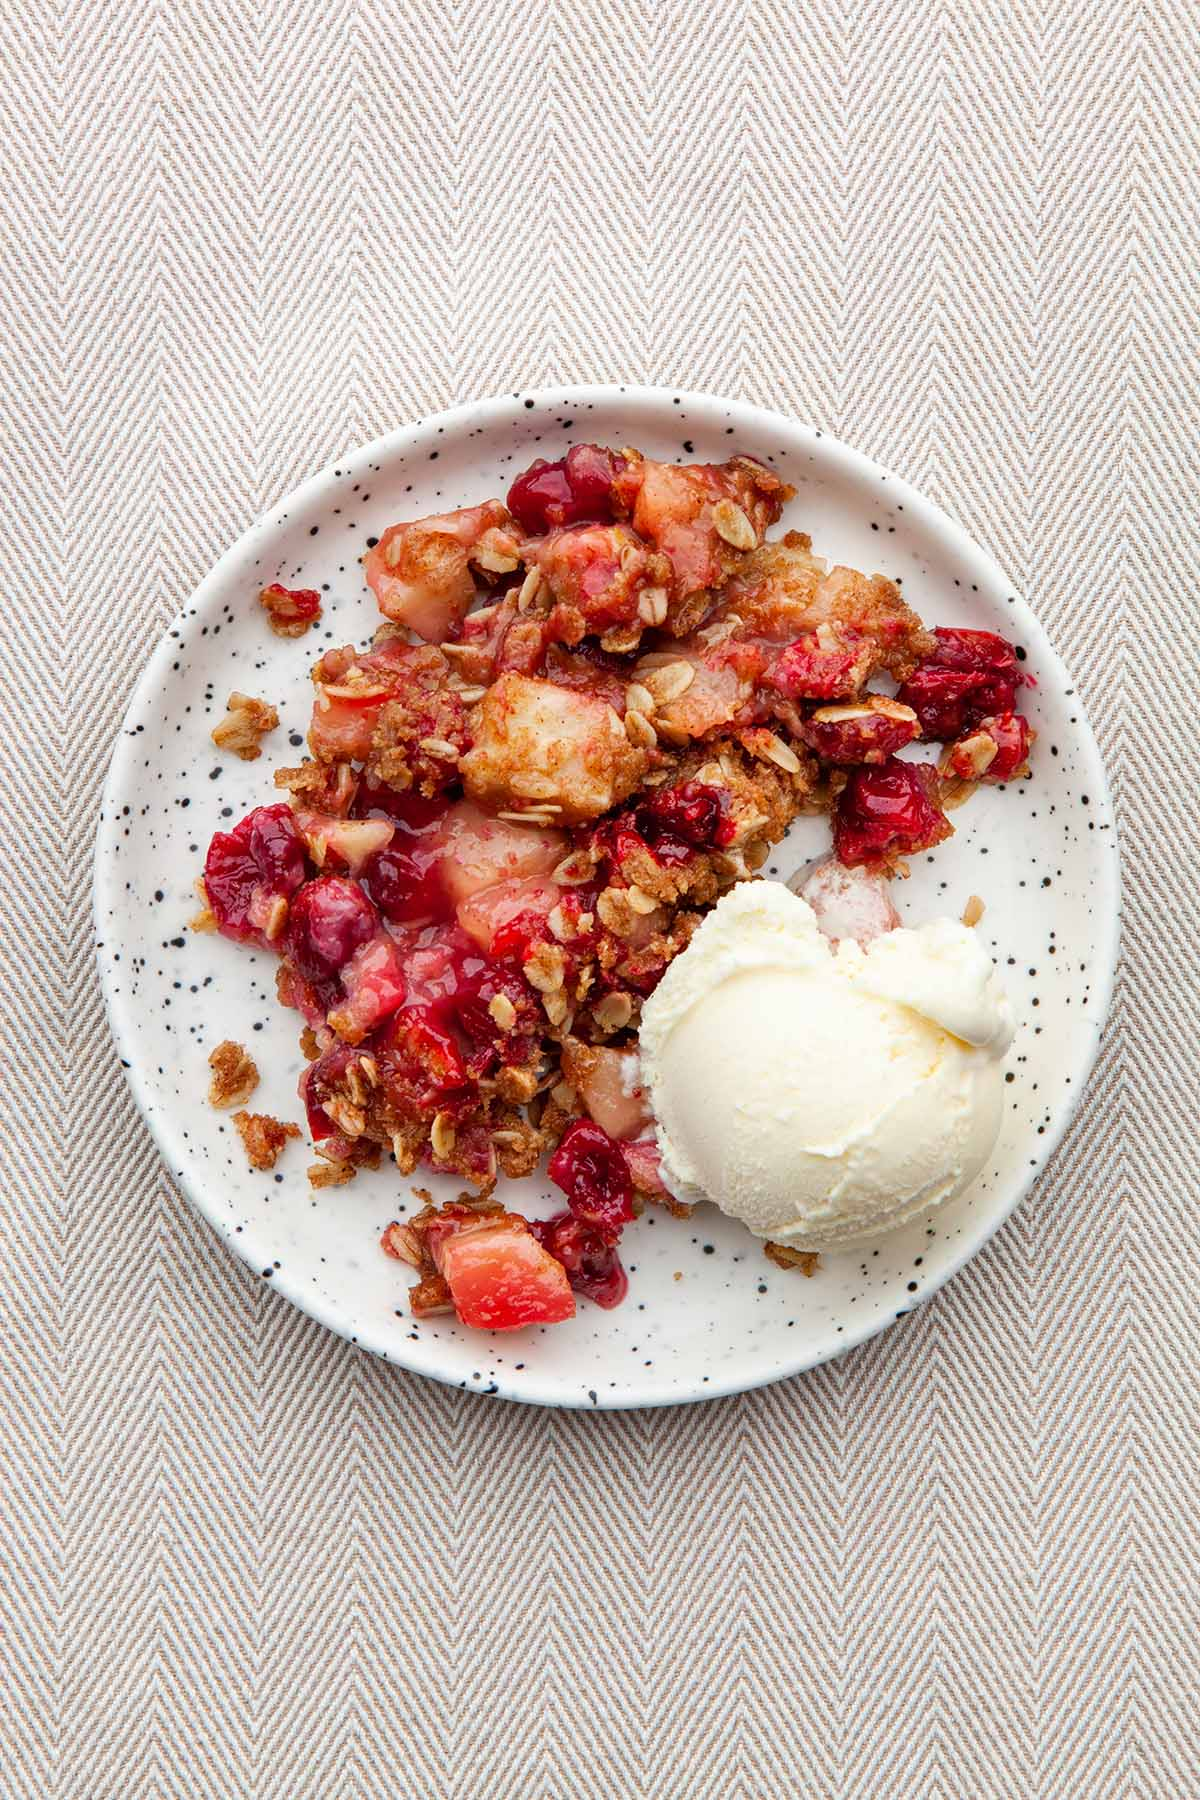 A plate of cranberry apple crisp topped with ice cream.